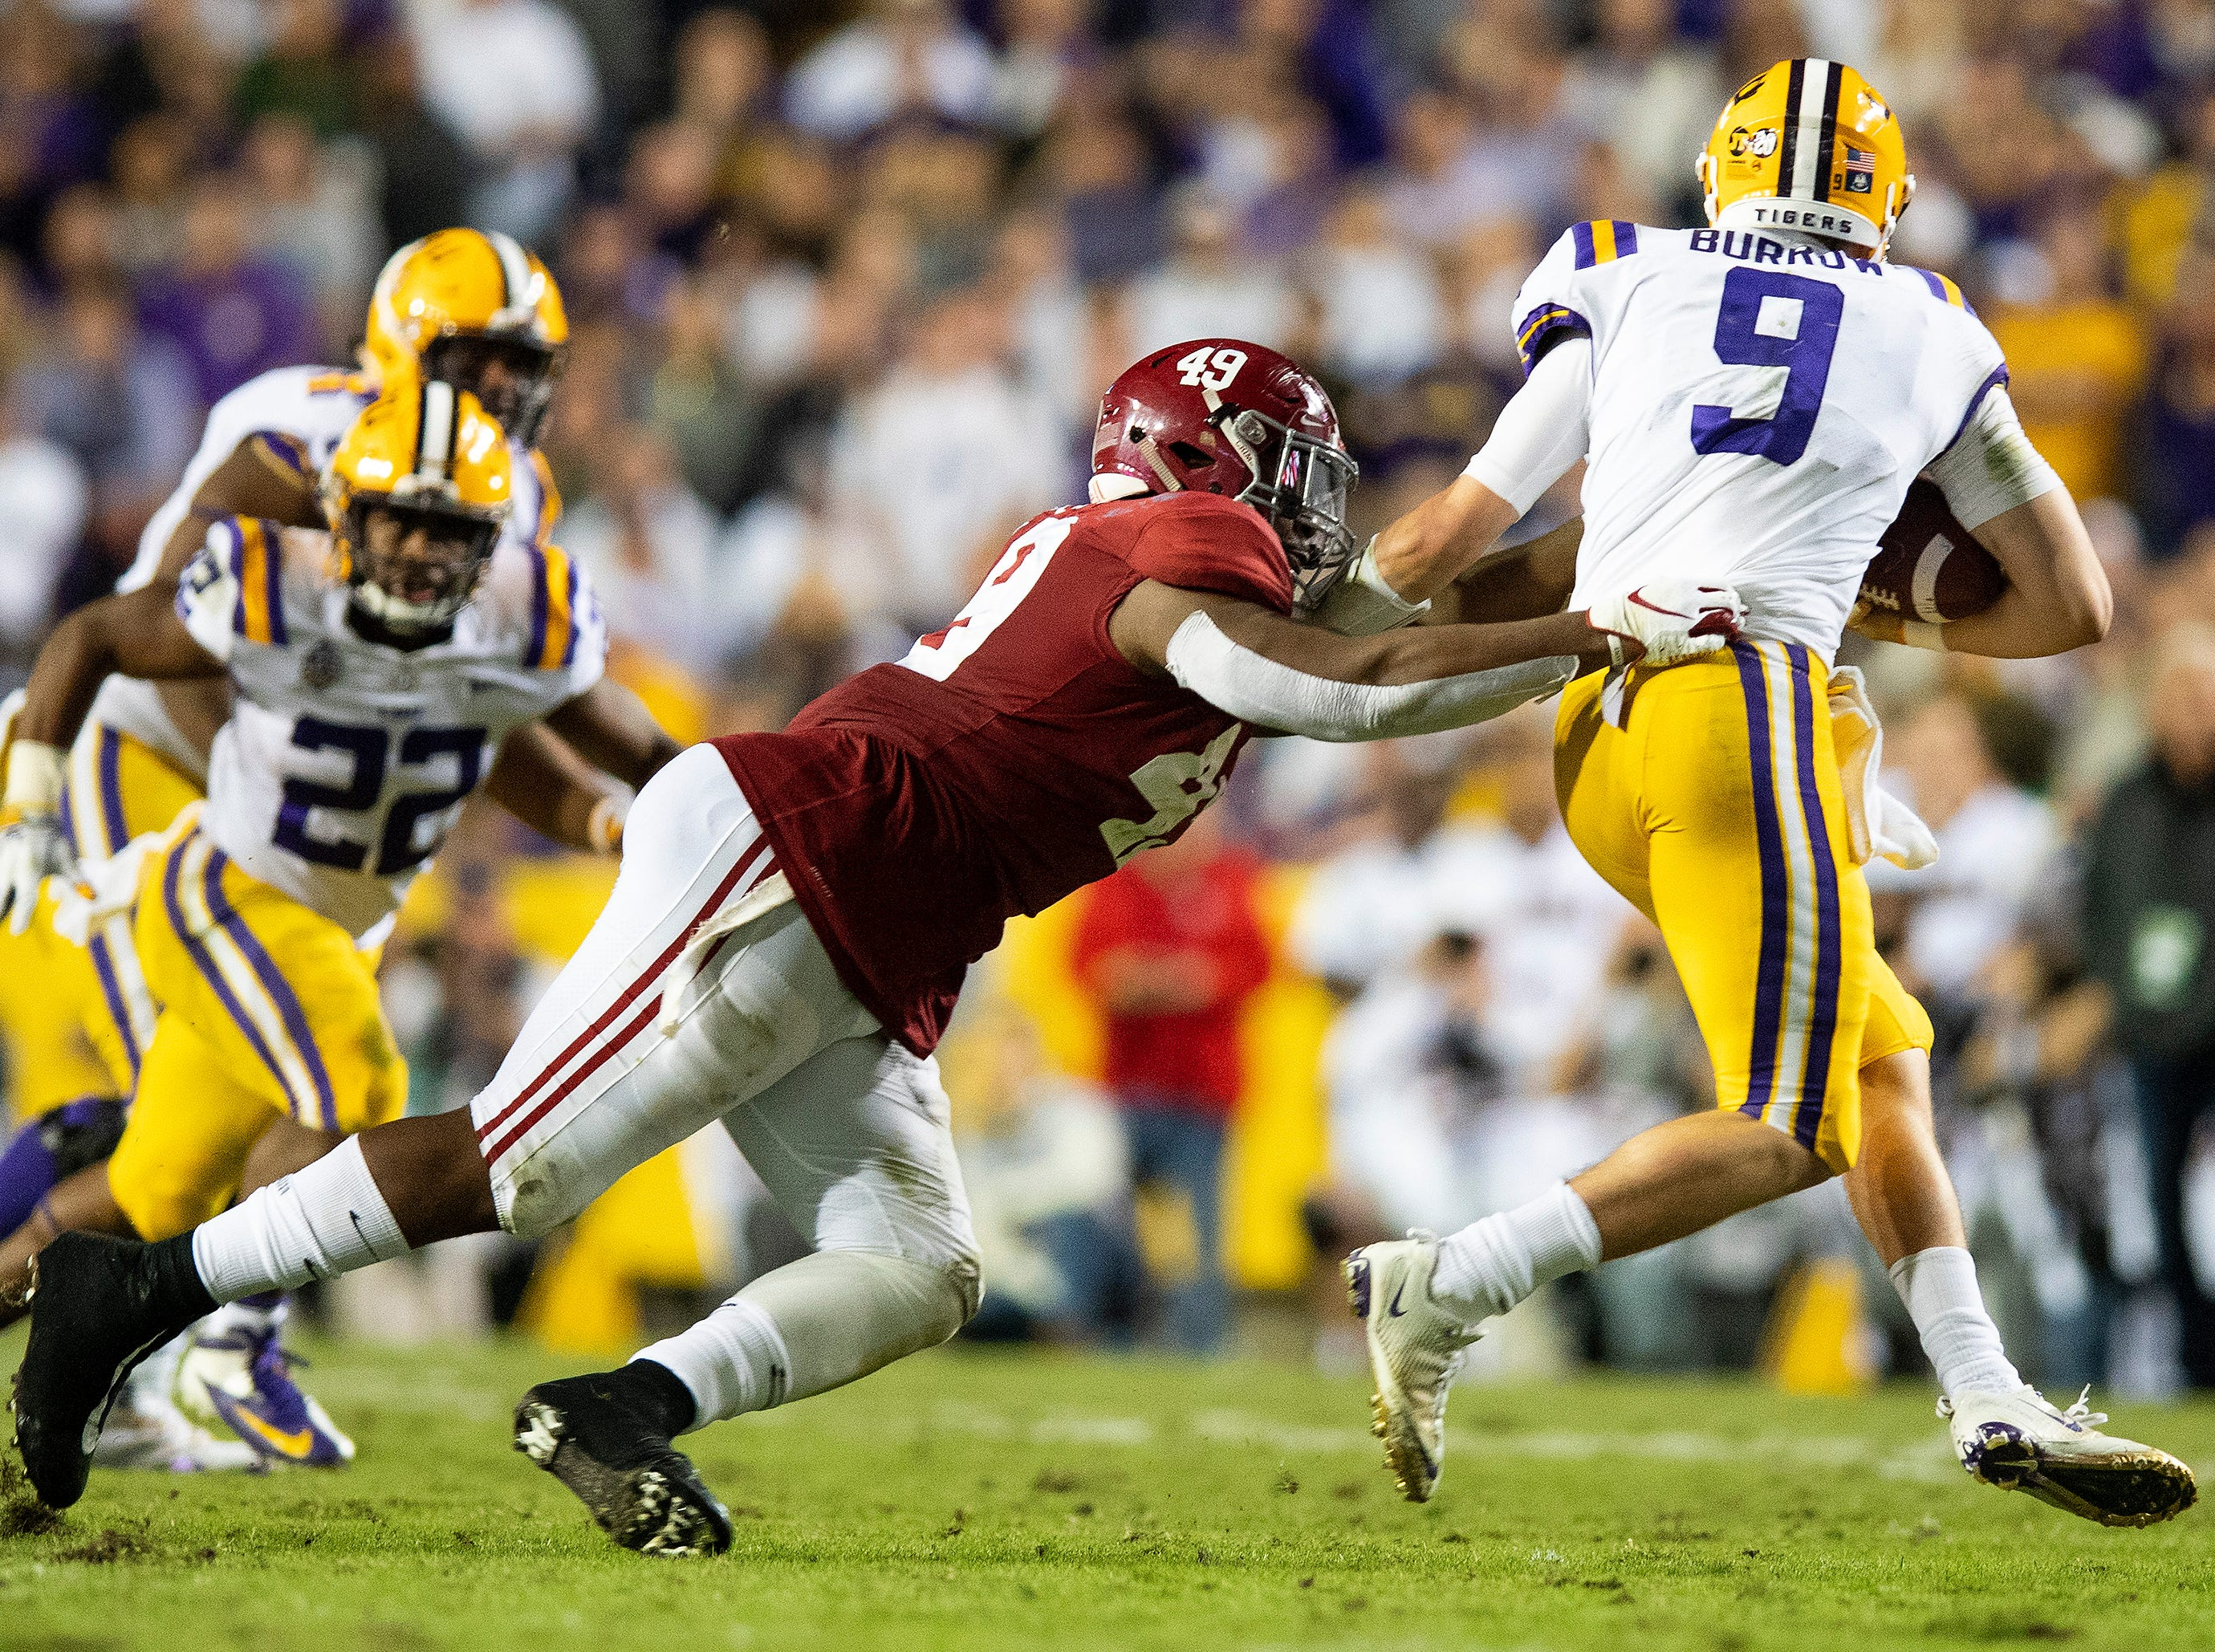 Alabama defensive lineman Isaiah Buggs (49) sacks Louisiana State University quarterback Joe Burrow (9) in second half action at Tiger Stadium in Baton Rouge, La., on Saturday November 3, 2018.